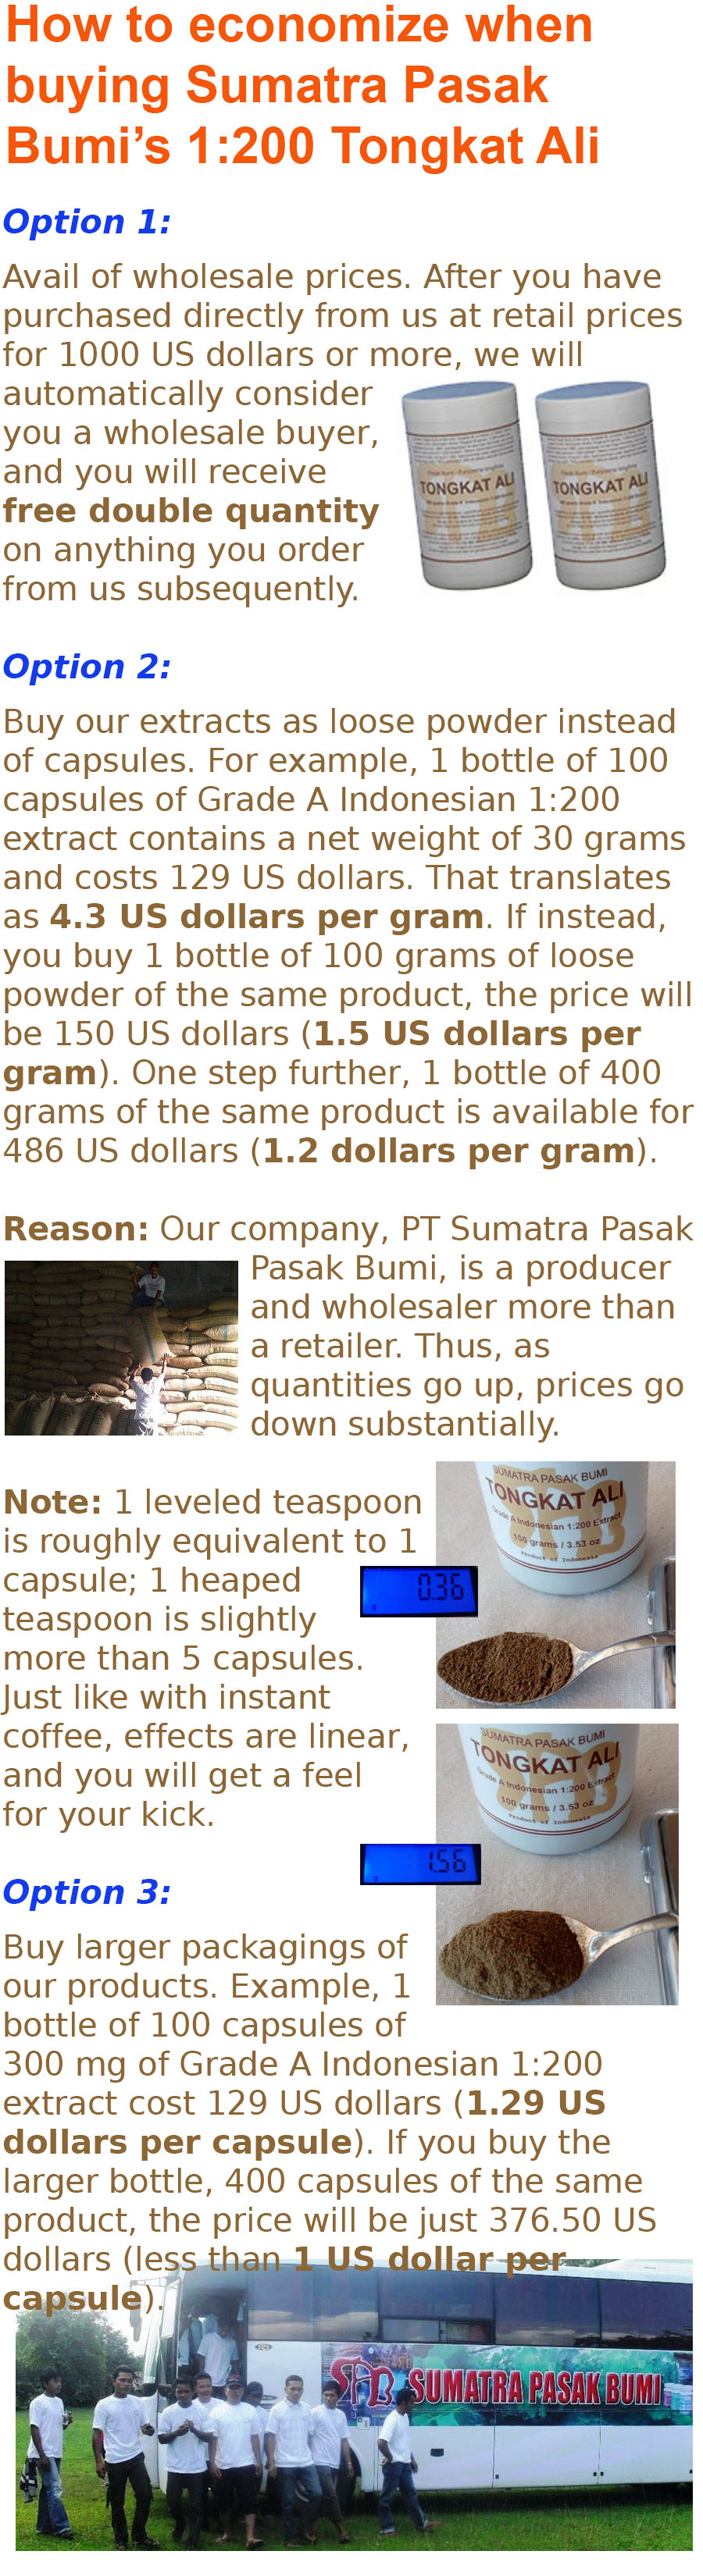 How to economize when buying Sumatra Pasak Bumis 1:200 Tongkat Ali - Option 1: Avail of wholesale prices. After you have purchased directly from us at retail prices for 1000 US dollars or more, we will automatically consider you a wholesale buyer, and you will receive free double quantity on anything you order from us subsequently. - Option 2: Buy our extracts as loose powder instead of capsules. For example, 1 bottle of 100 capsules of Grade A Indonesian 1:200 extract contains a net weight of 30 grams and costs 86 US dollars. That translates as 2.87 US dollars per gram. If instead, you buy 1 bottle of 100 grams of loose powder of the same product, the price will be 100 US dollars (just 1 US dollar per gram). One step further, 1 bottle of 400 grams of the same product is available for 324 US dollars (81 cents per gram). Reason: Our company, PT Sumatra Pasak Pasak Bumi, is a producer and wholesaler more than a retailer. Thus, as quantities go up, prices go down substantially. Note: 1 leveled teaspoon is roughly equivalent to 1 capsule; 1 heaped teaspoon is slightly more than 5 capsules. Just like with instant coffee, effects are linear, and you will get a feel for your kick. - Option 3: Buy larger packagings of our products. Example, 1 bottle of 100 capsules of 300 mg of Grade A Indonesian 1:200 extract cost 86 US dollars (86 cents per capsule). If you buy the larger bottle, 400 capsules of the same product, the price will be just 251 US dollars (less than 63 cents per capsule).